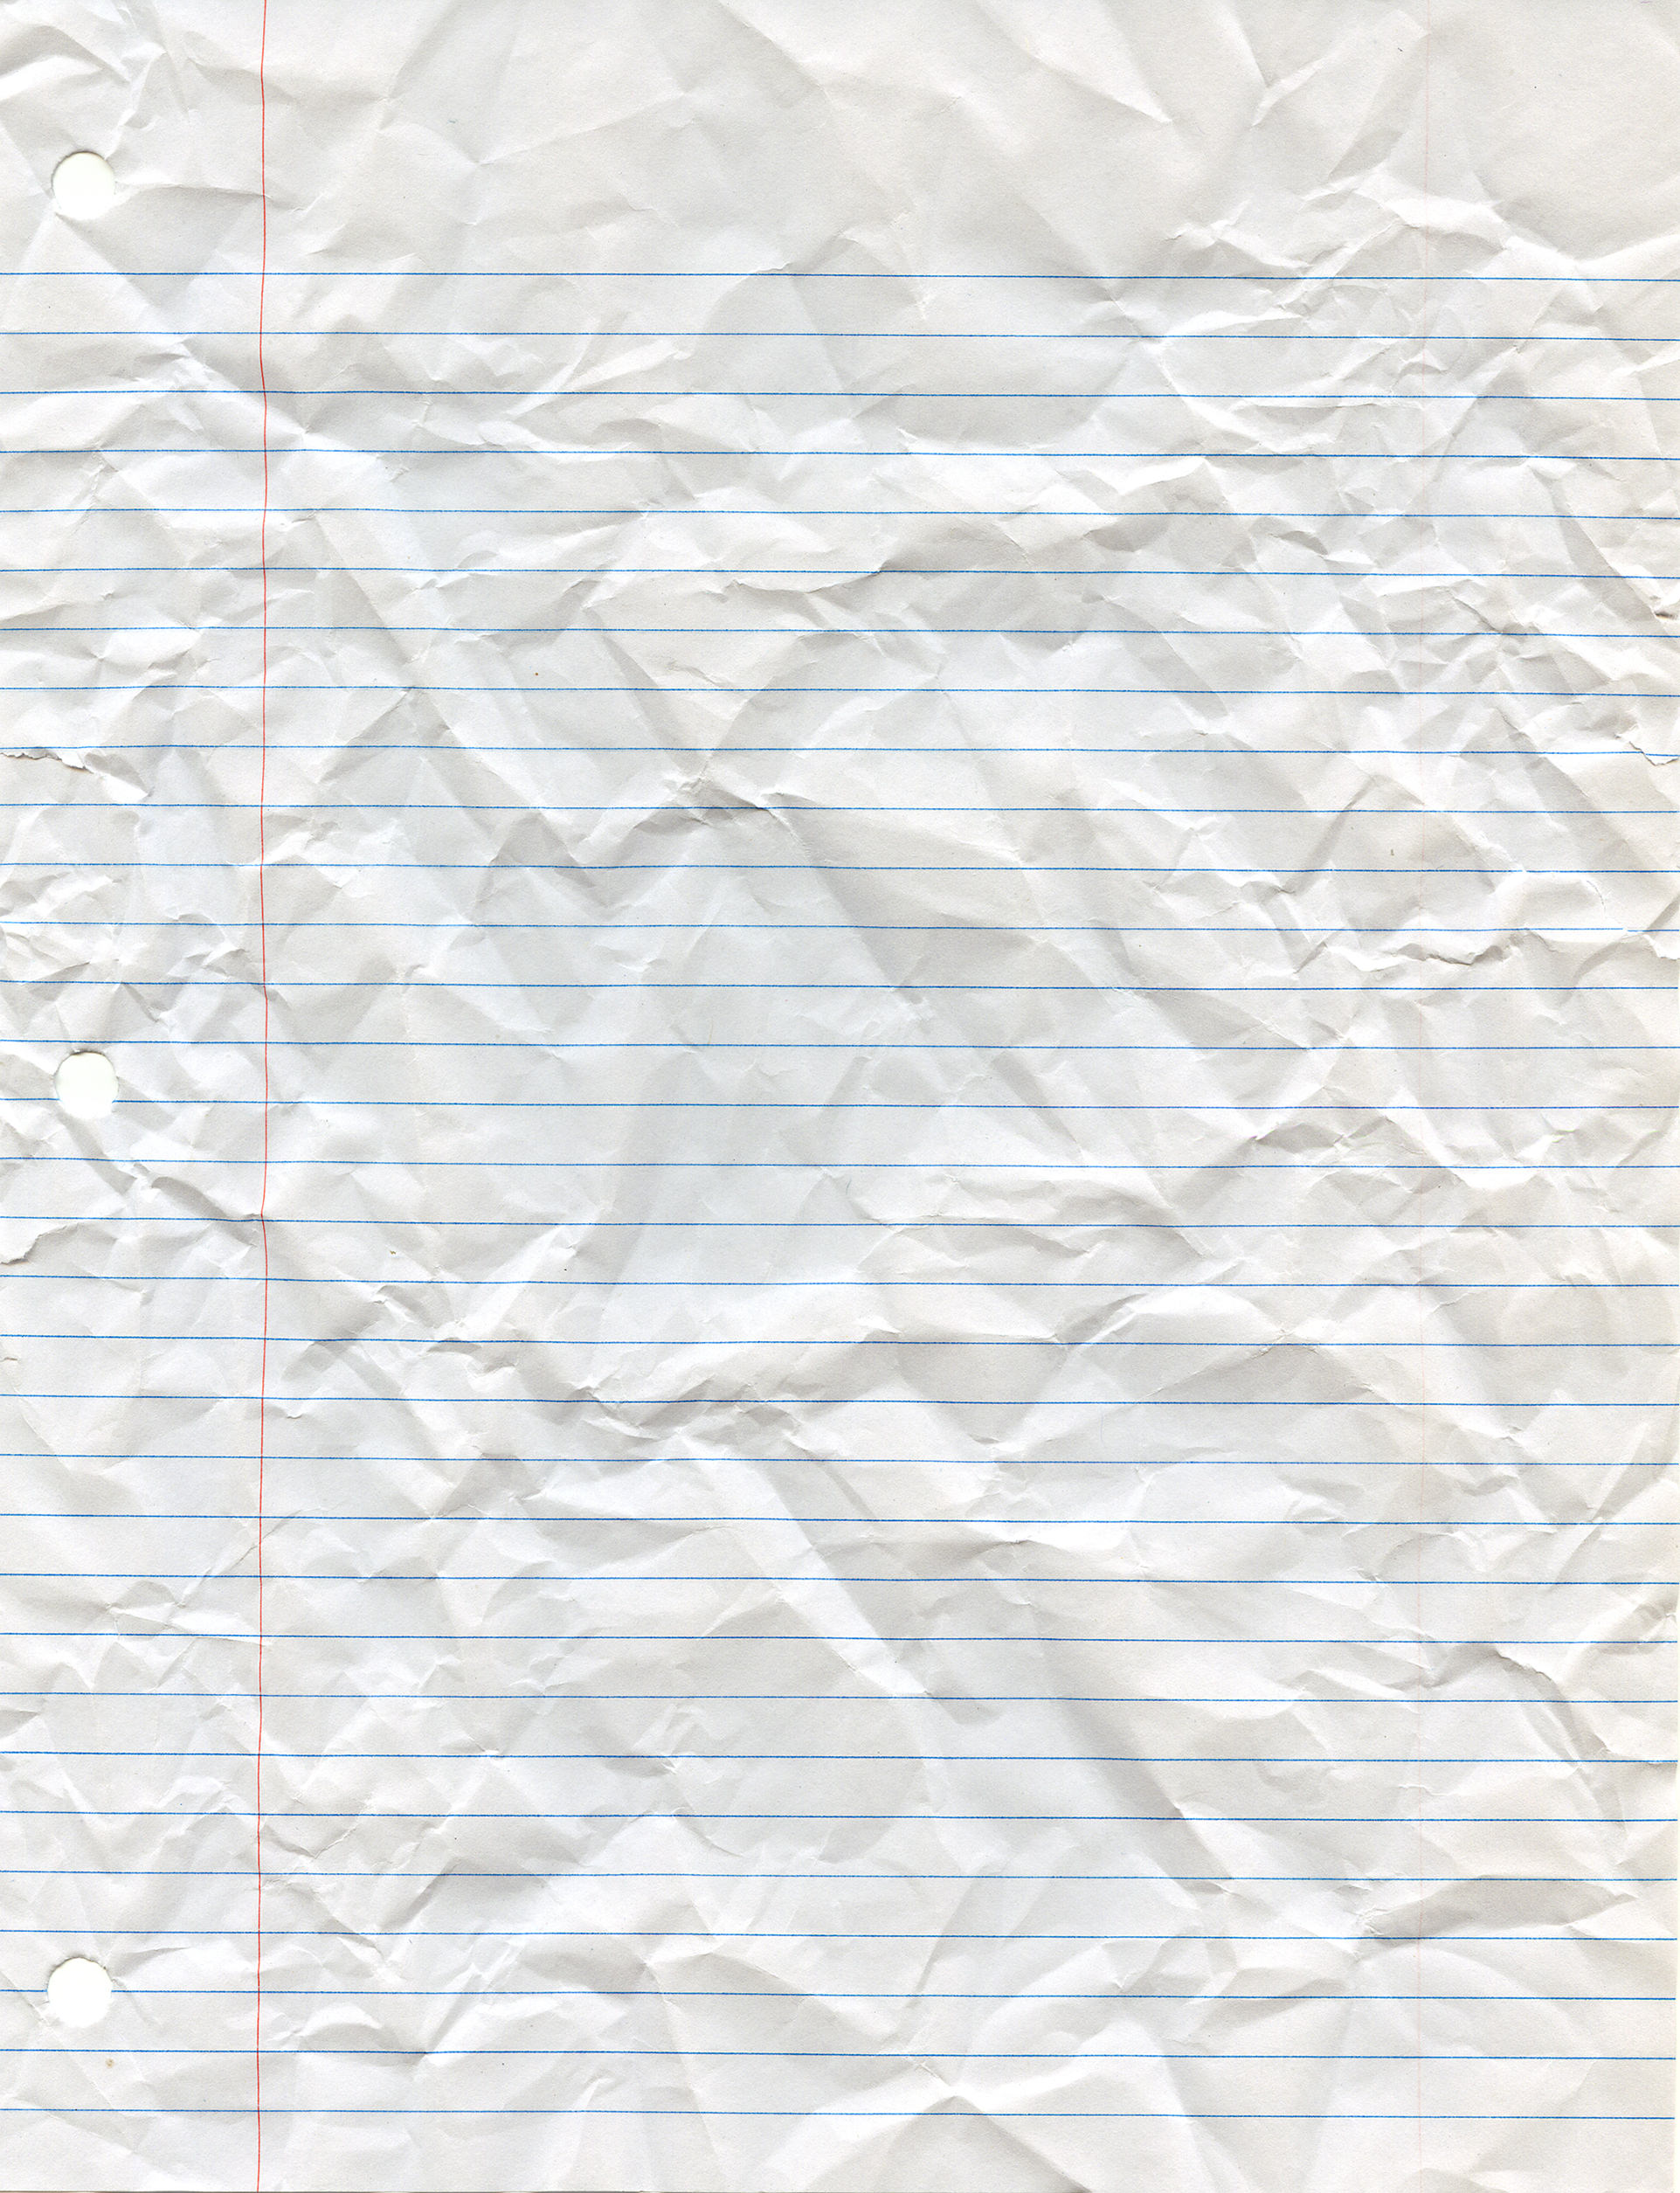 25  lined paper textures  patterns  backgrounds